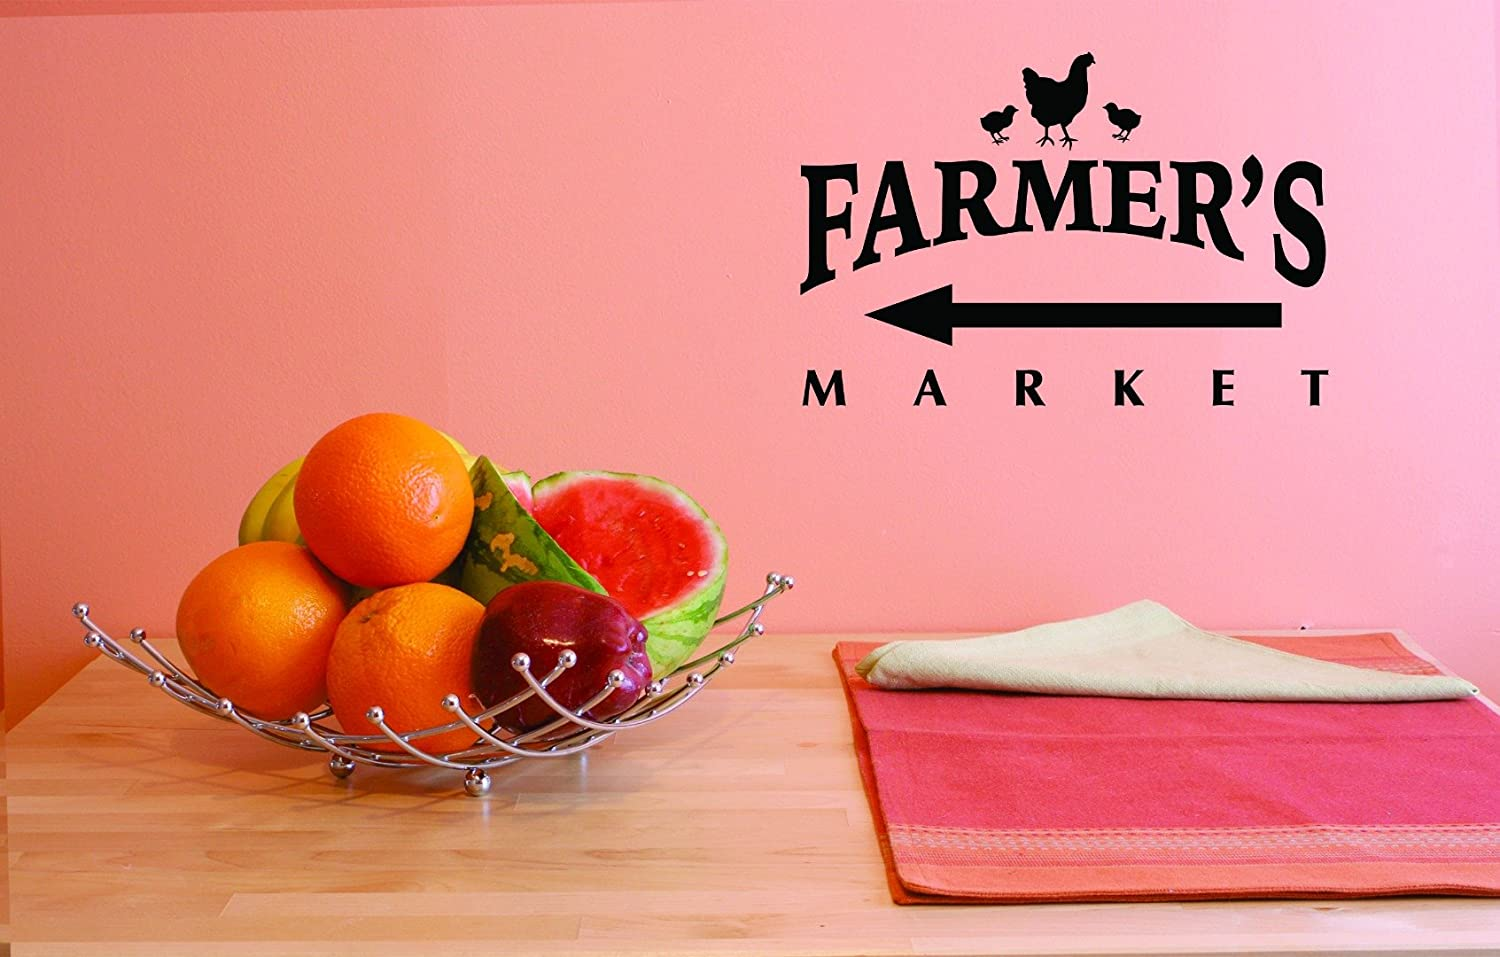 Design with Vinyl JER 1764 1 1 Hot New Decals Farmers Market Wall Art Size 10 inches x 20 inches Color 10 x 20 Black